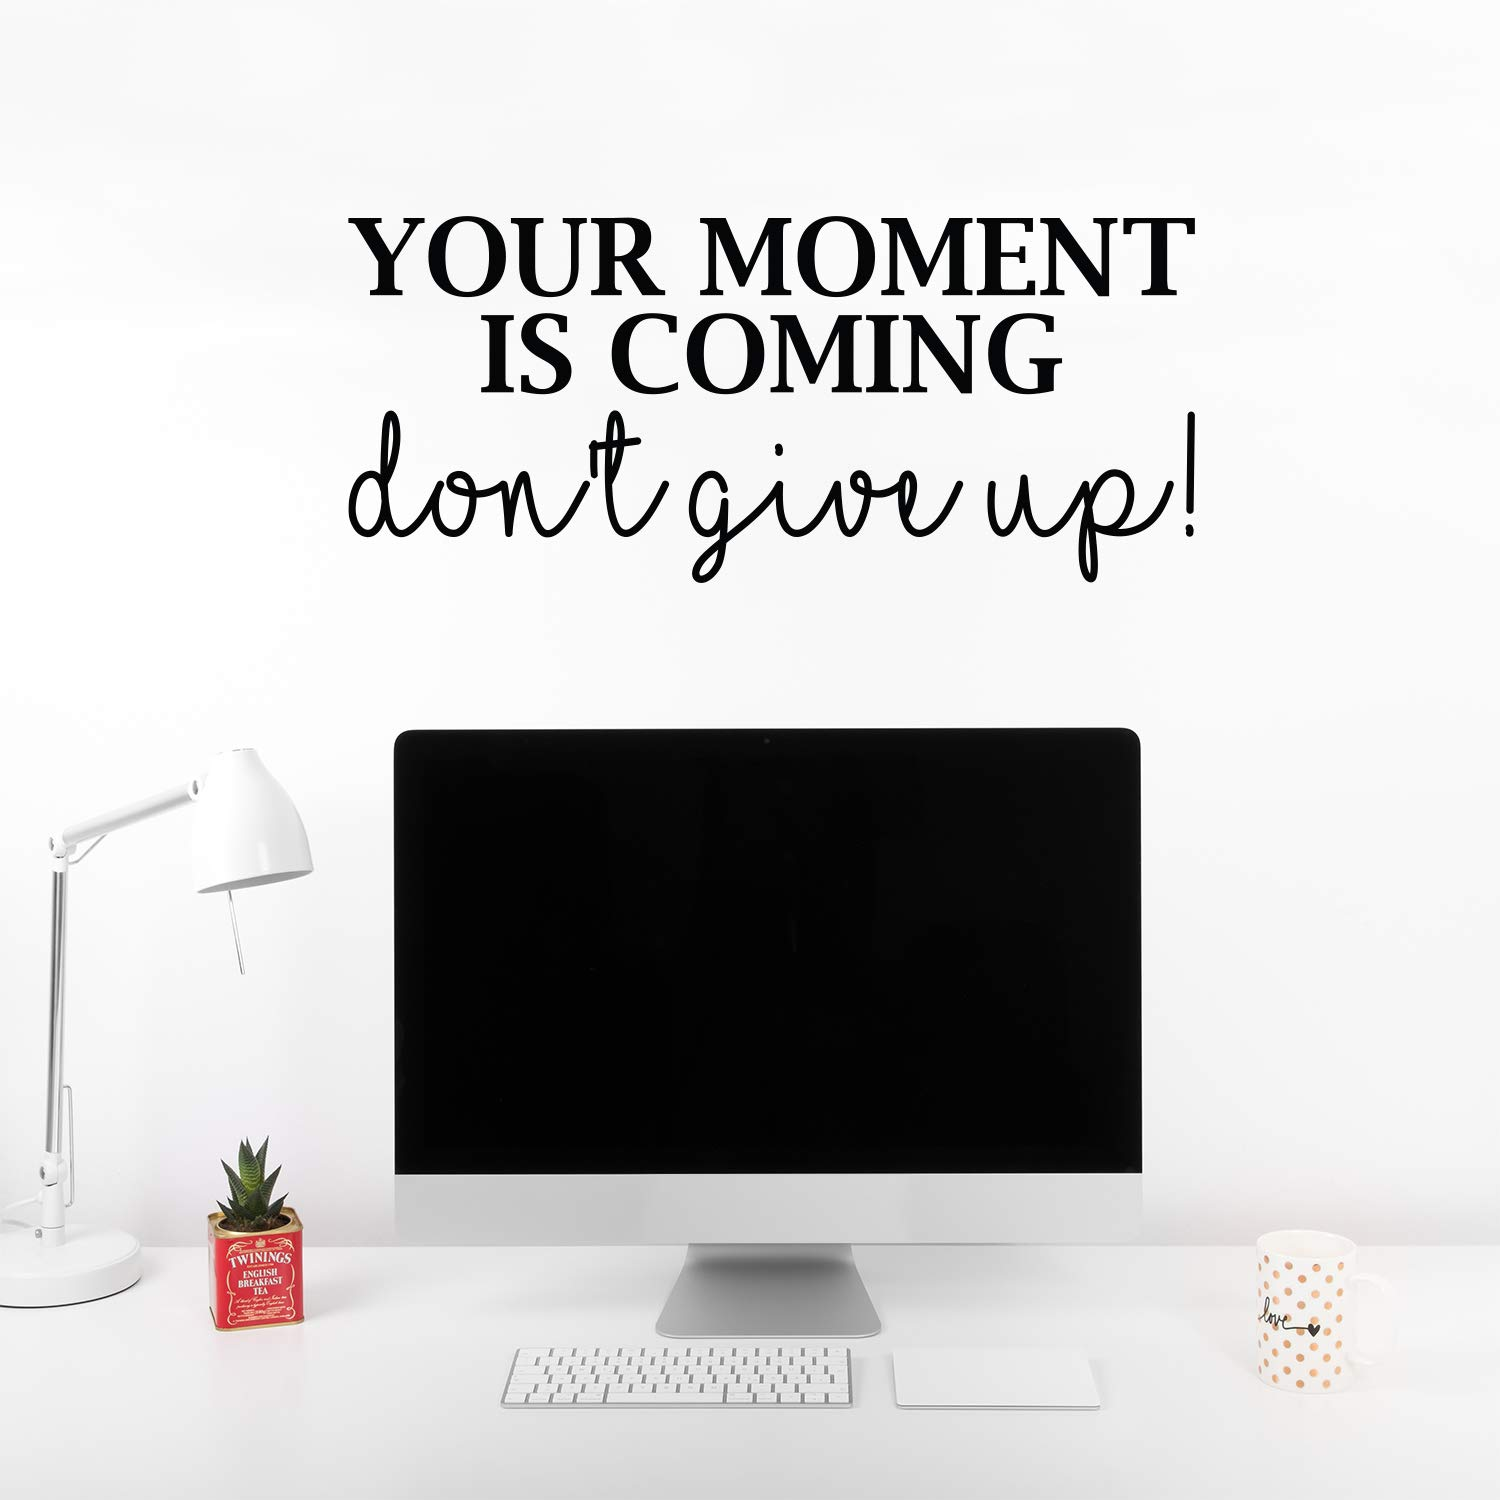 """Vinyl Wall Art Decal - Your Moment is Coming Don't Give Up! - 13"""" x 30"""" - Modern Inspirational Self Esteem Quote Sticker for Home School Bedroom Work Office Classroom Decor (Black)"""